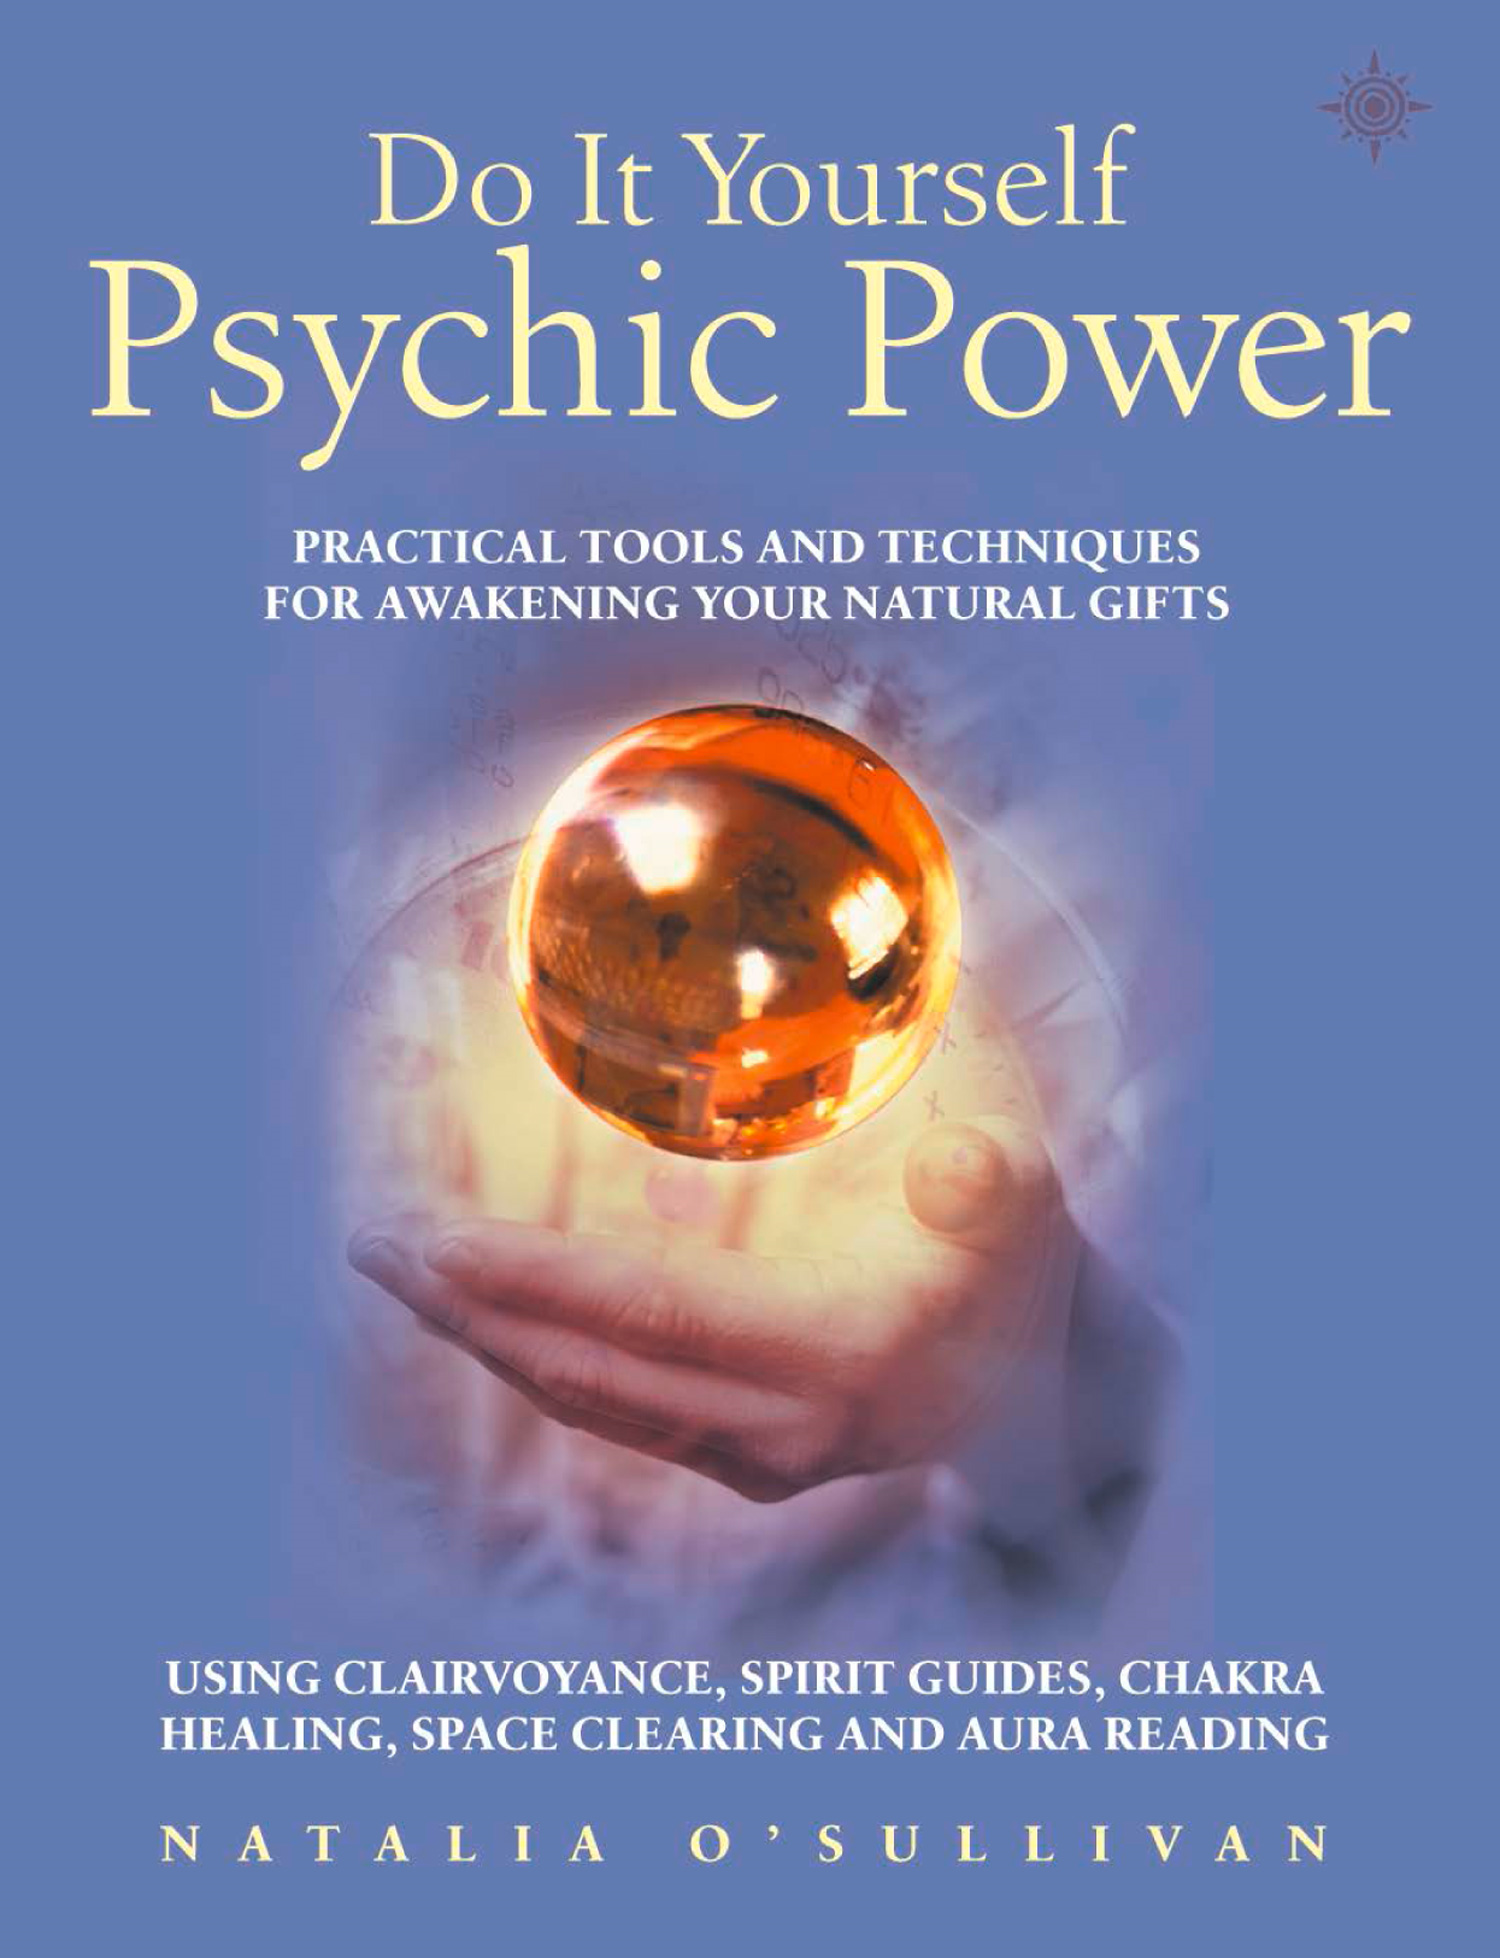 Do It Yourself Psychic Power: Practical Tools and Techniques for Awakening Your Natural Gifts using Clairvoyance,  Spirit Guides,  Chakra Healing,  Space